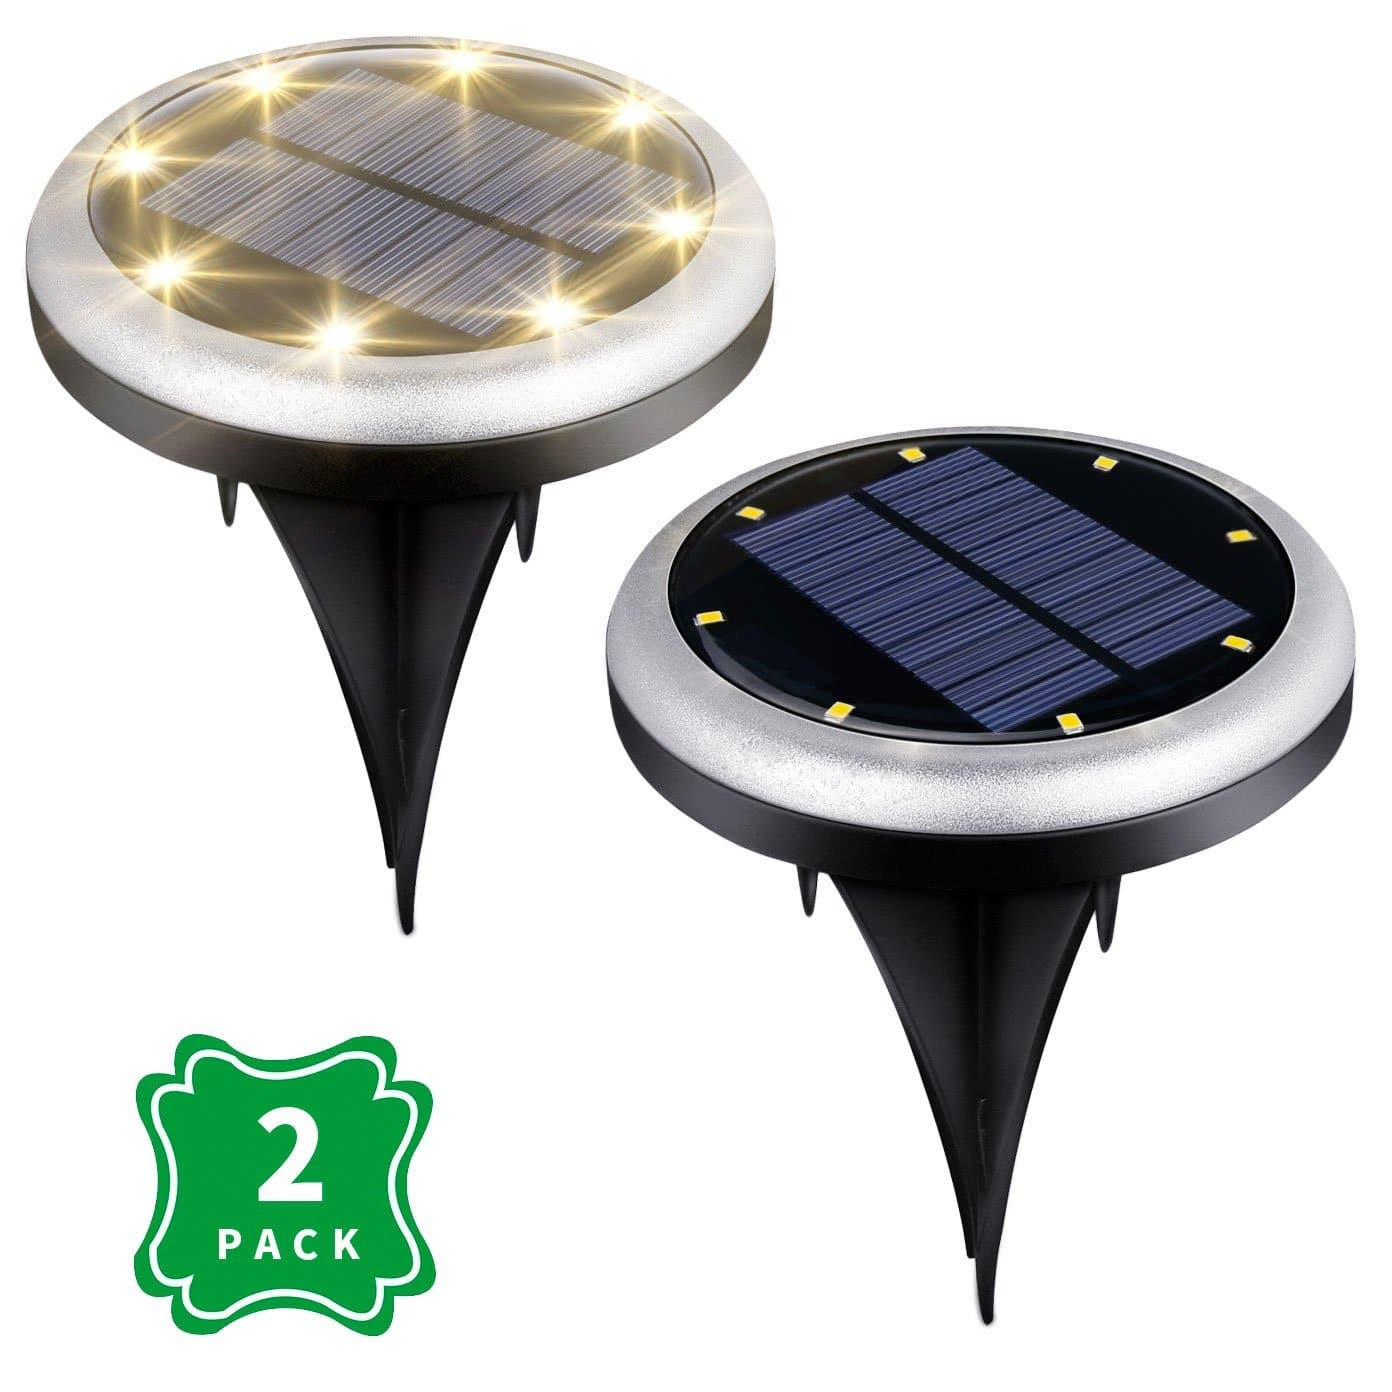 [2-Pack] 8 LED In-Ground Waterproof Solar Lights - Dark Sensing Auto On/Off @Amazon $16.79